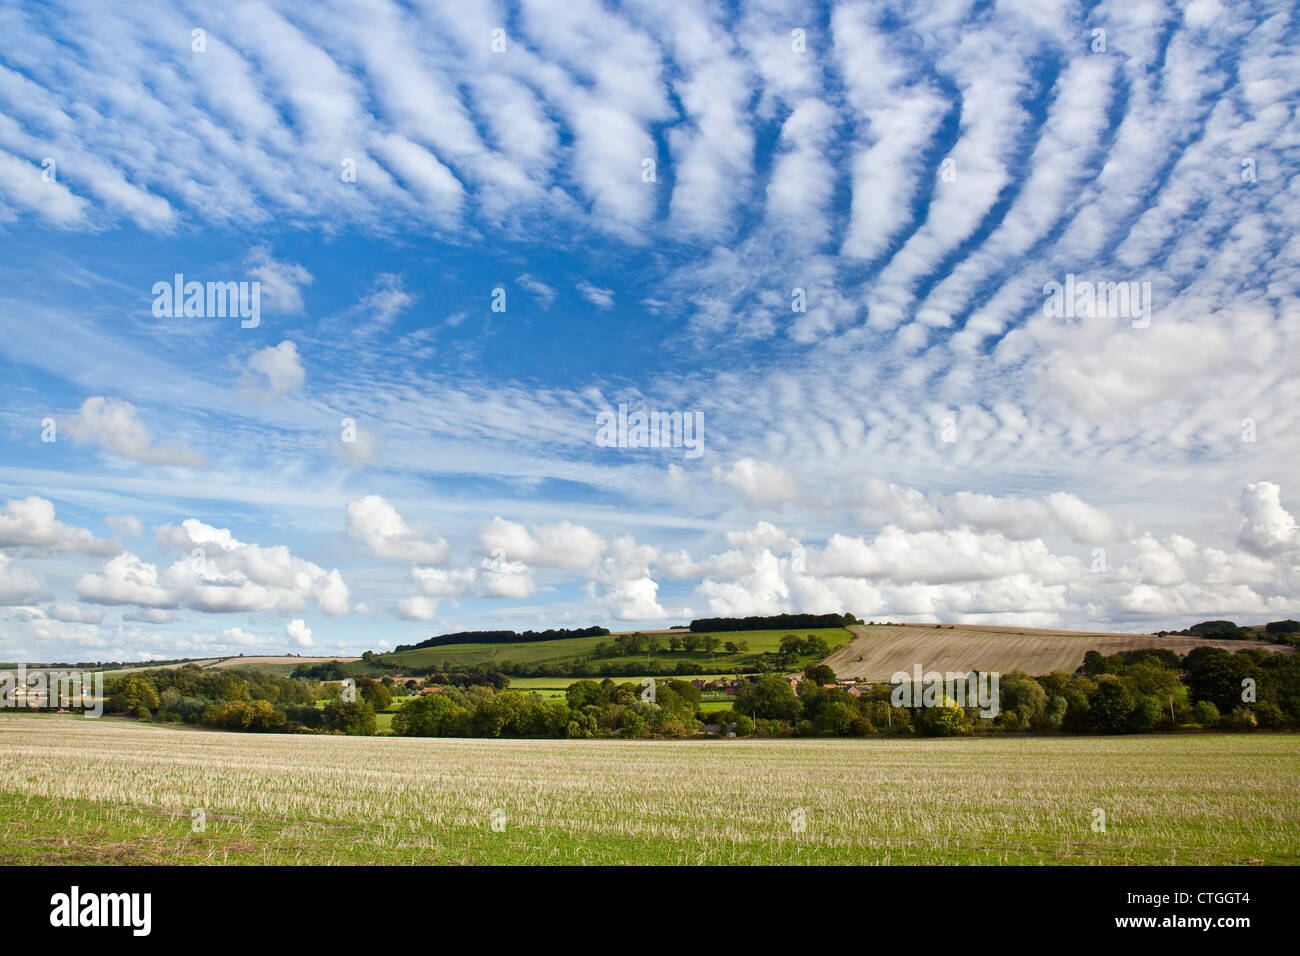 A view of the English countryside with white clouds and blue sky, Knighton Hill, Broad Chalke Wiltshire - Stock Image